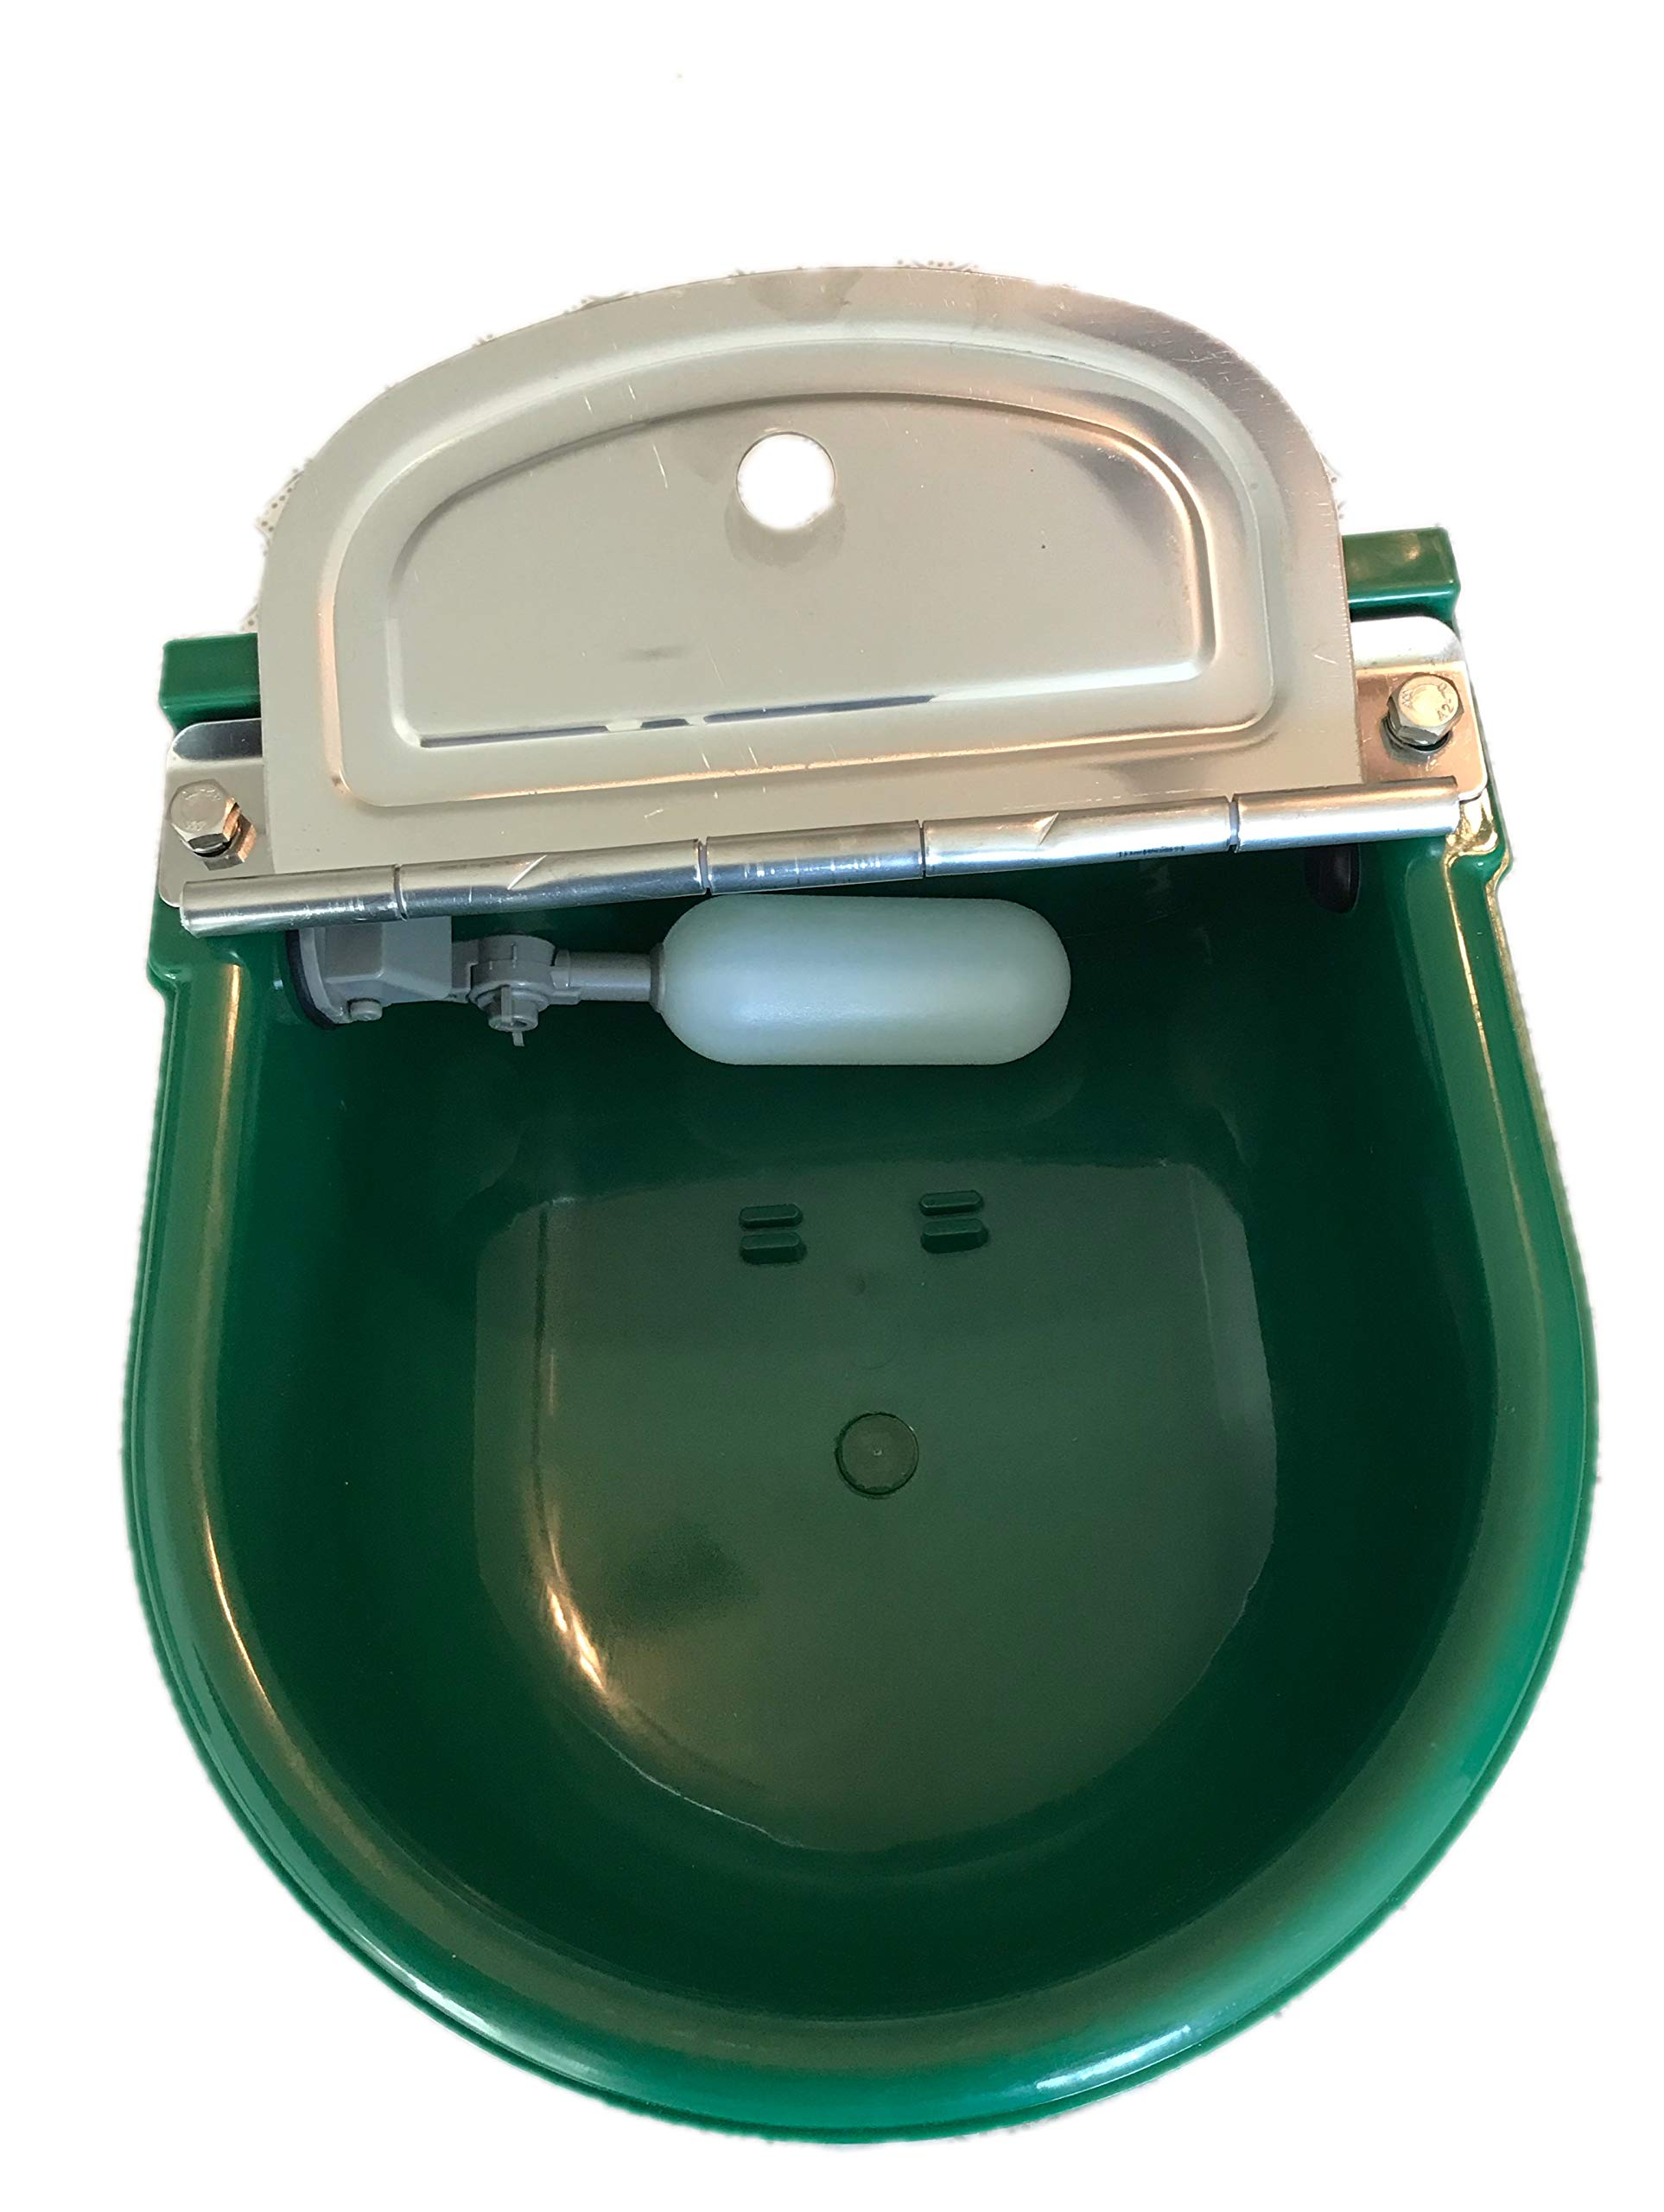 rabbitnipples.com Large Automatic Waterer for Horses, Cows, Goats and Other Live Stock 2